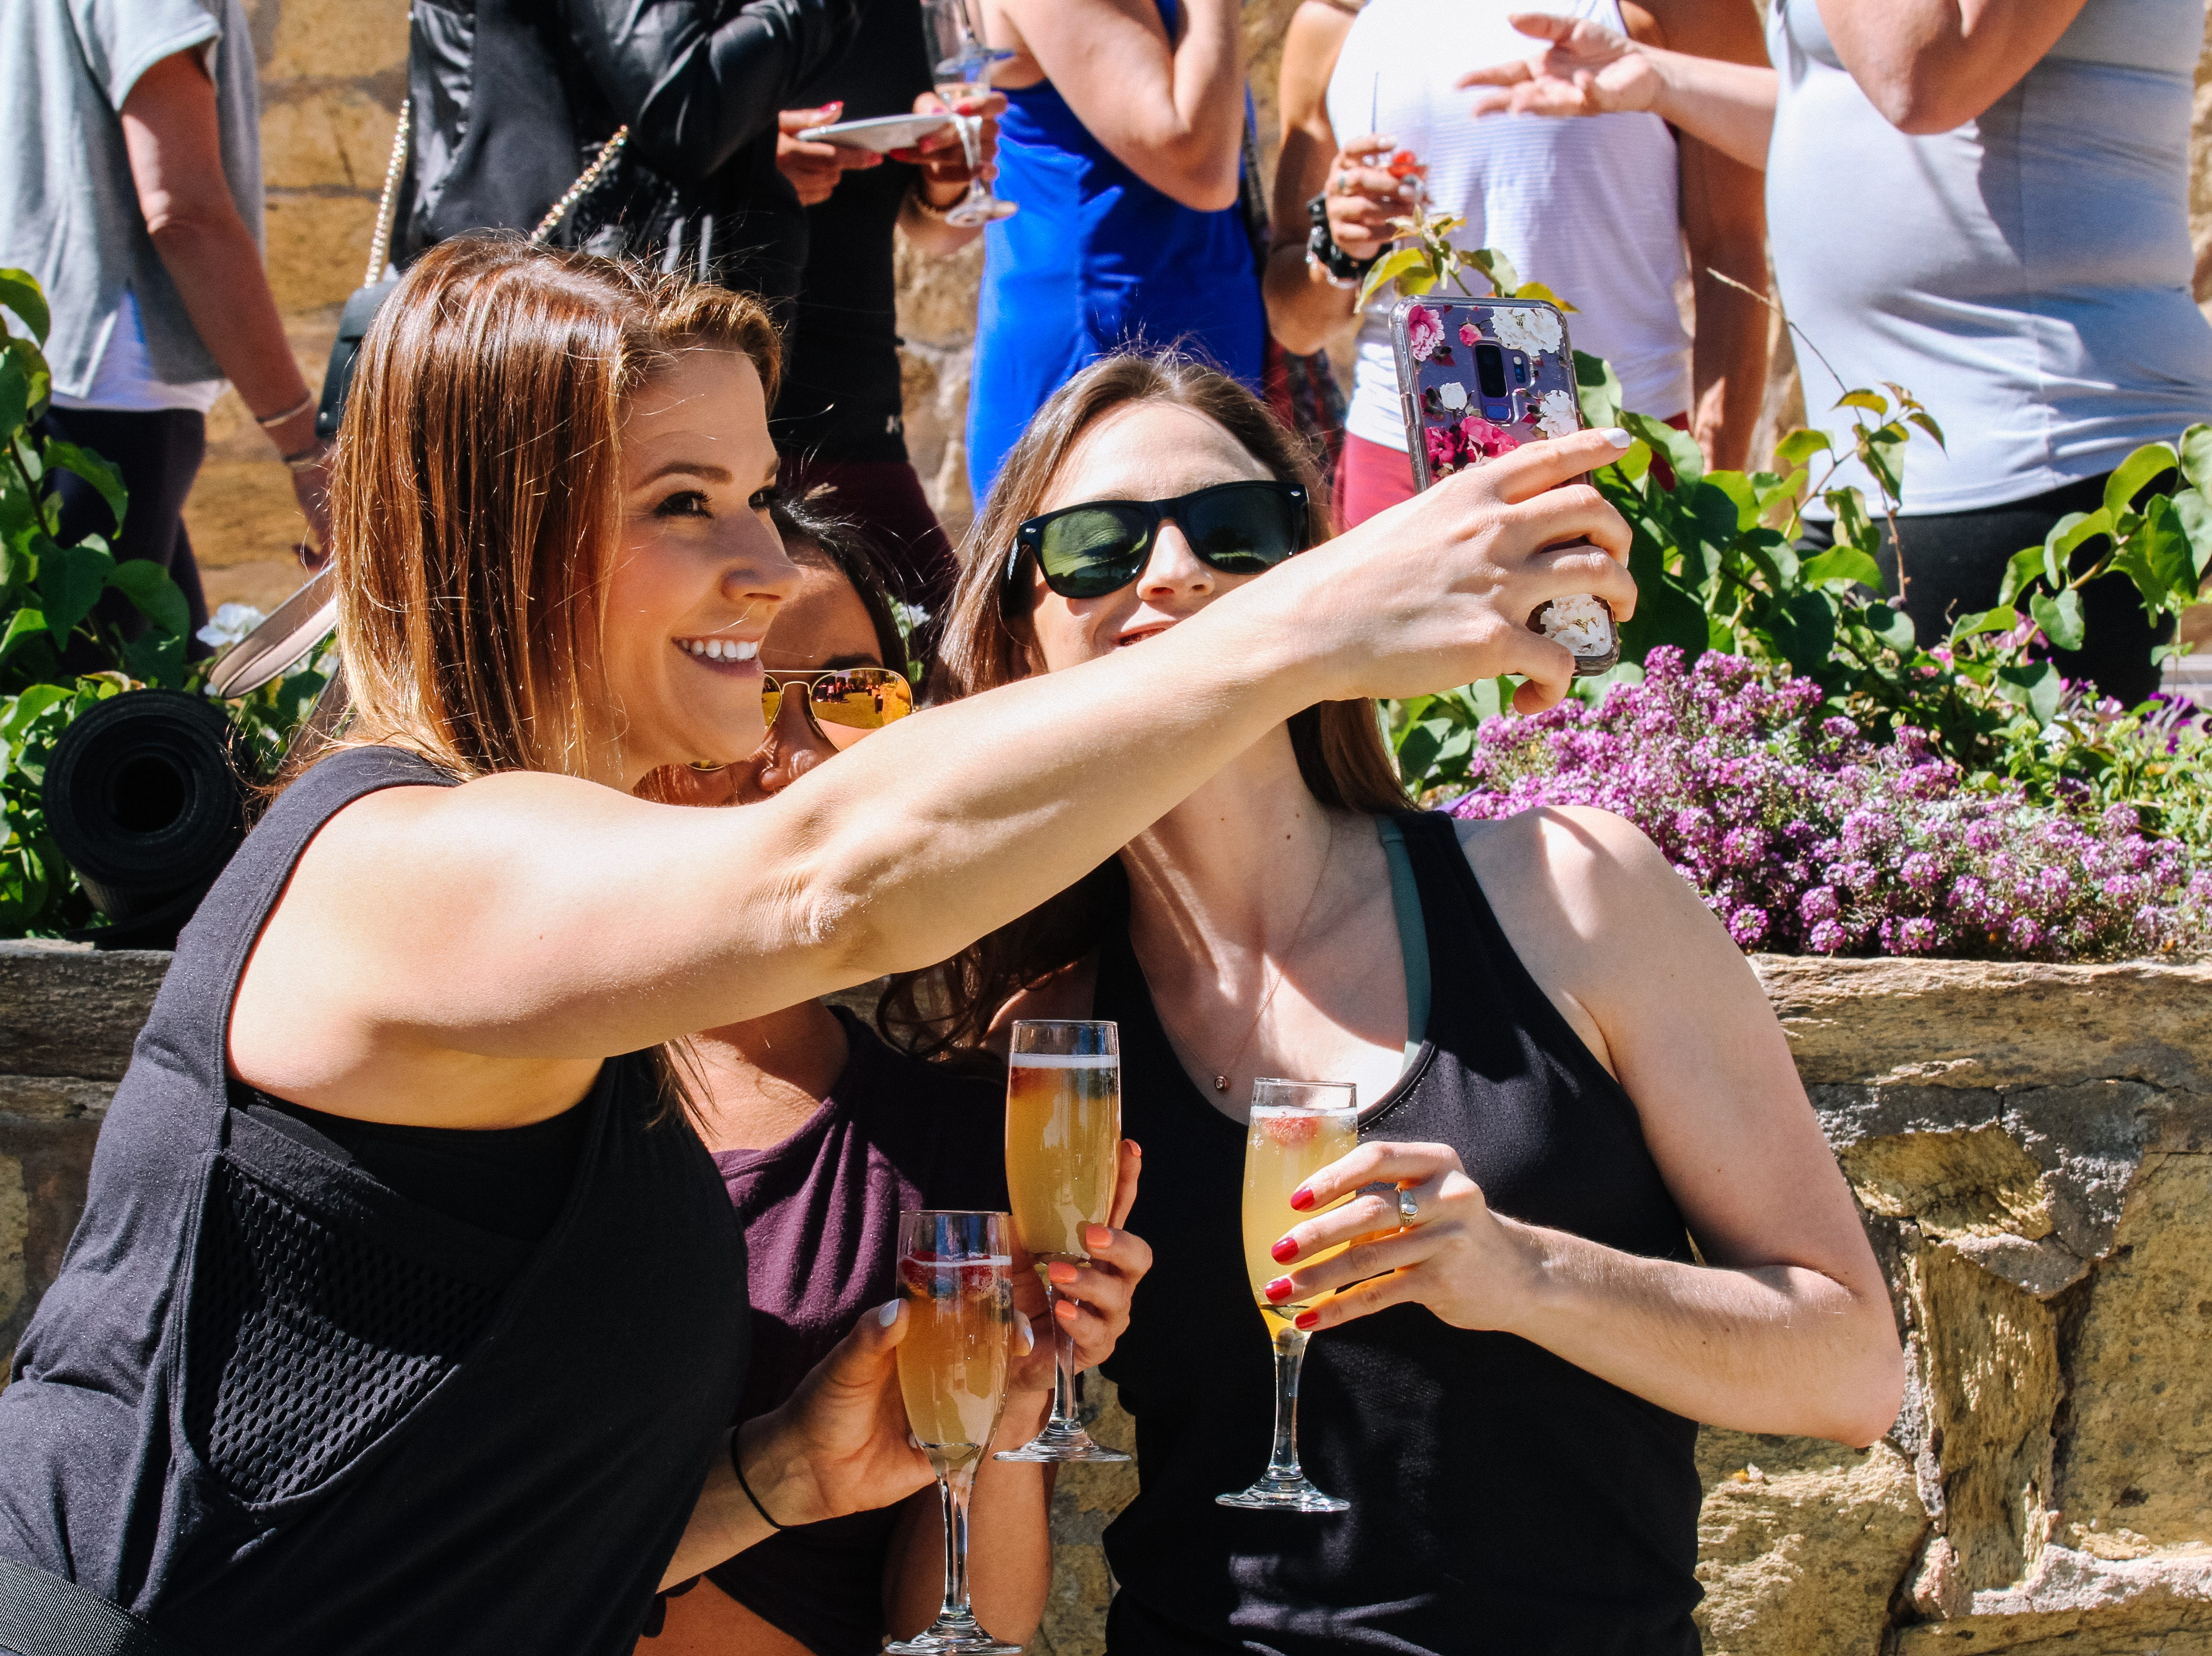 Attendees get food and drink after playing with puppies at Puppies, Pilates and Prosecco, an event hosted by Almost There Foster Care at the Wrigley Mansion in Phoenix on April 13, 2019.